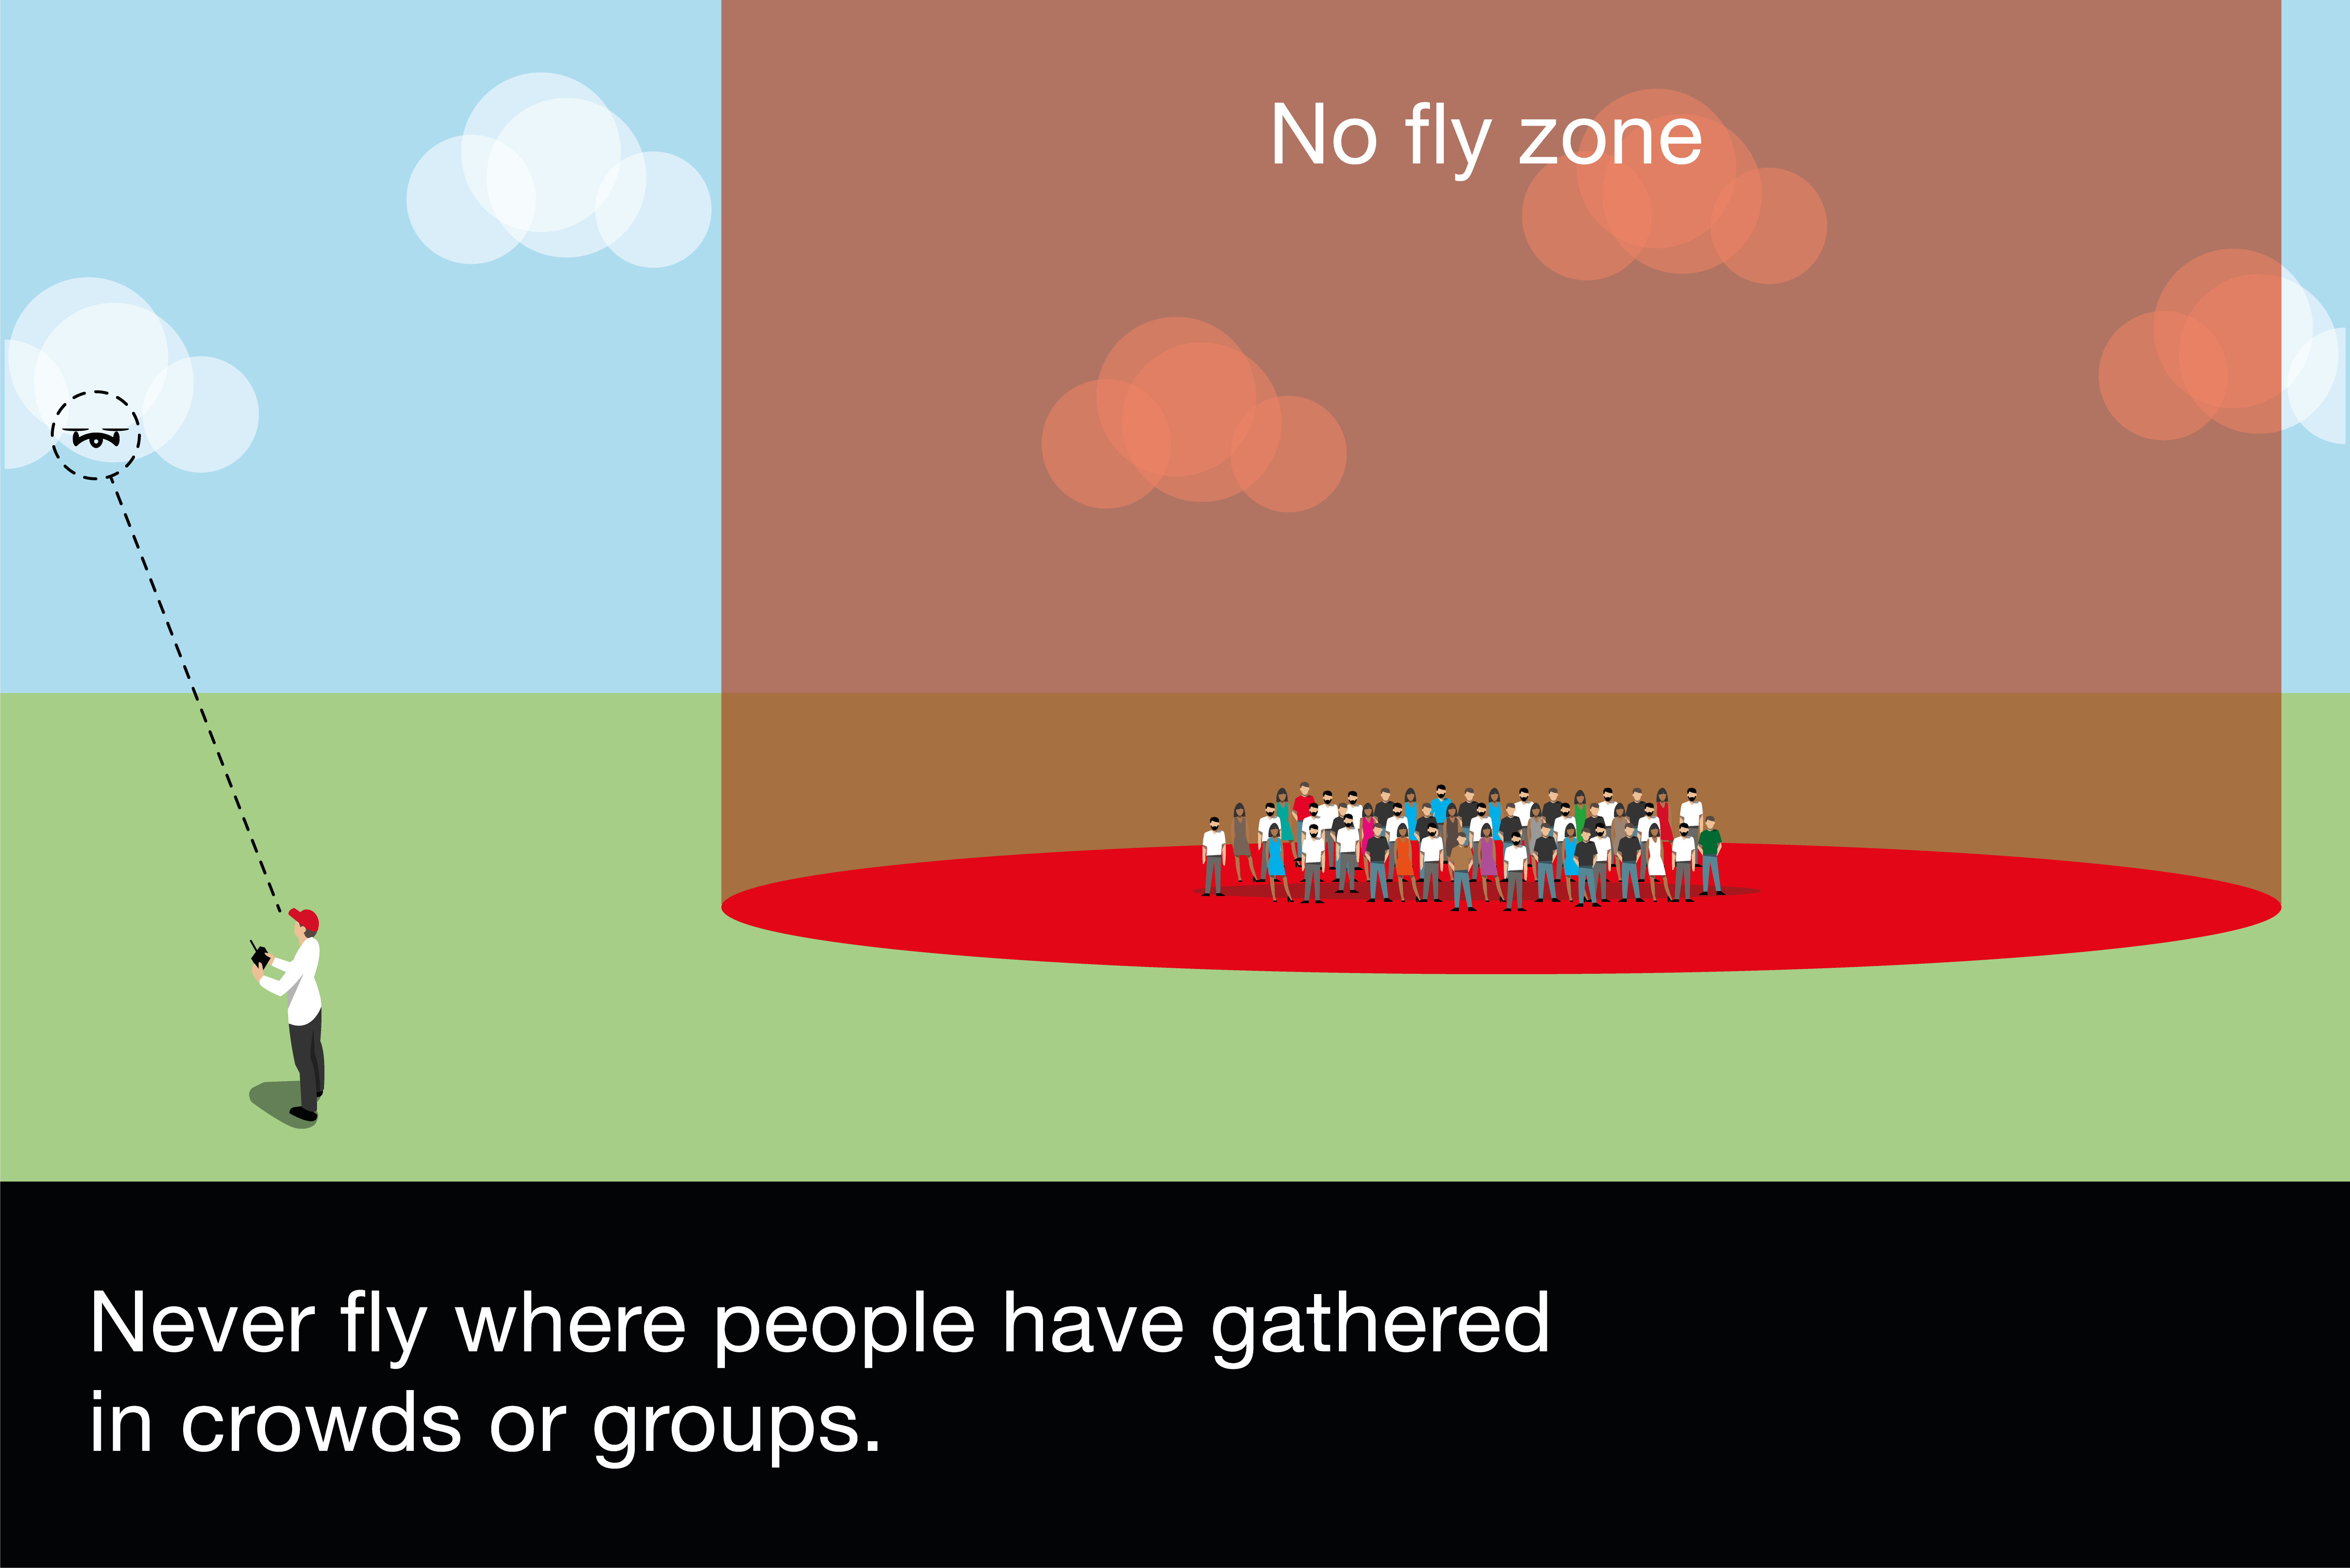 Never fly where people have gathered in crowds or groups.